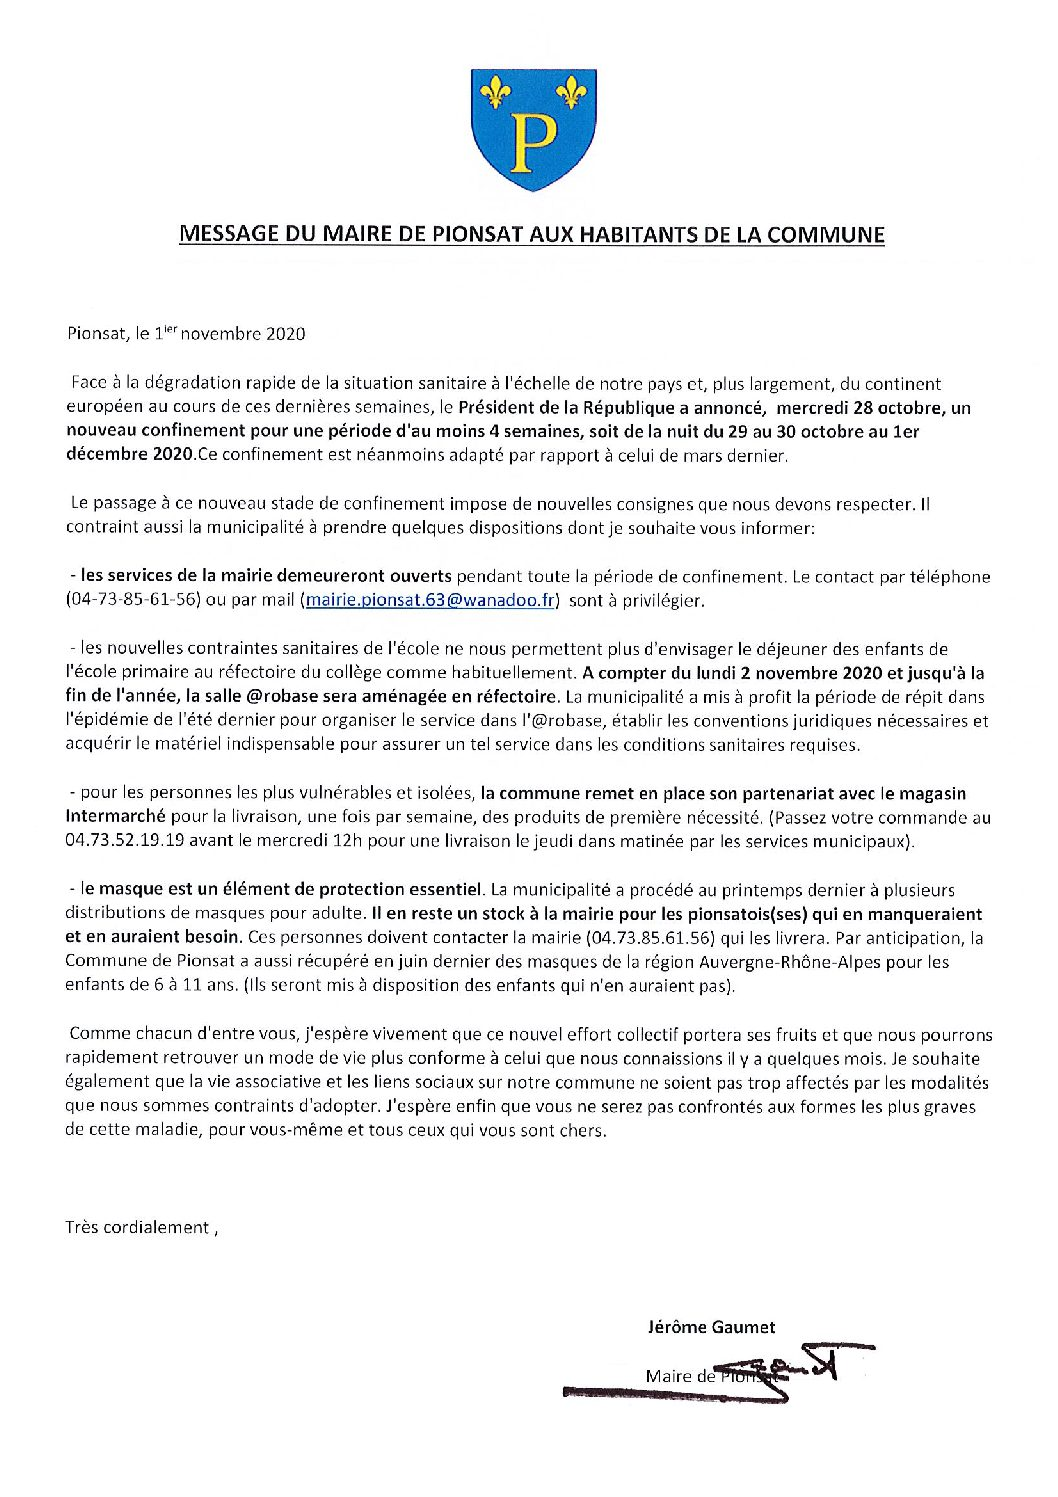 Message du Maire aux habitants